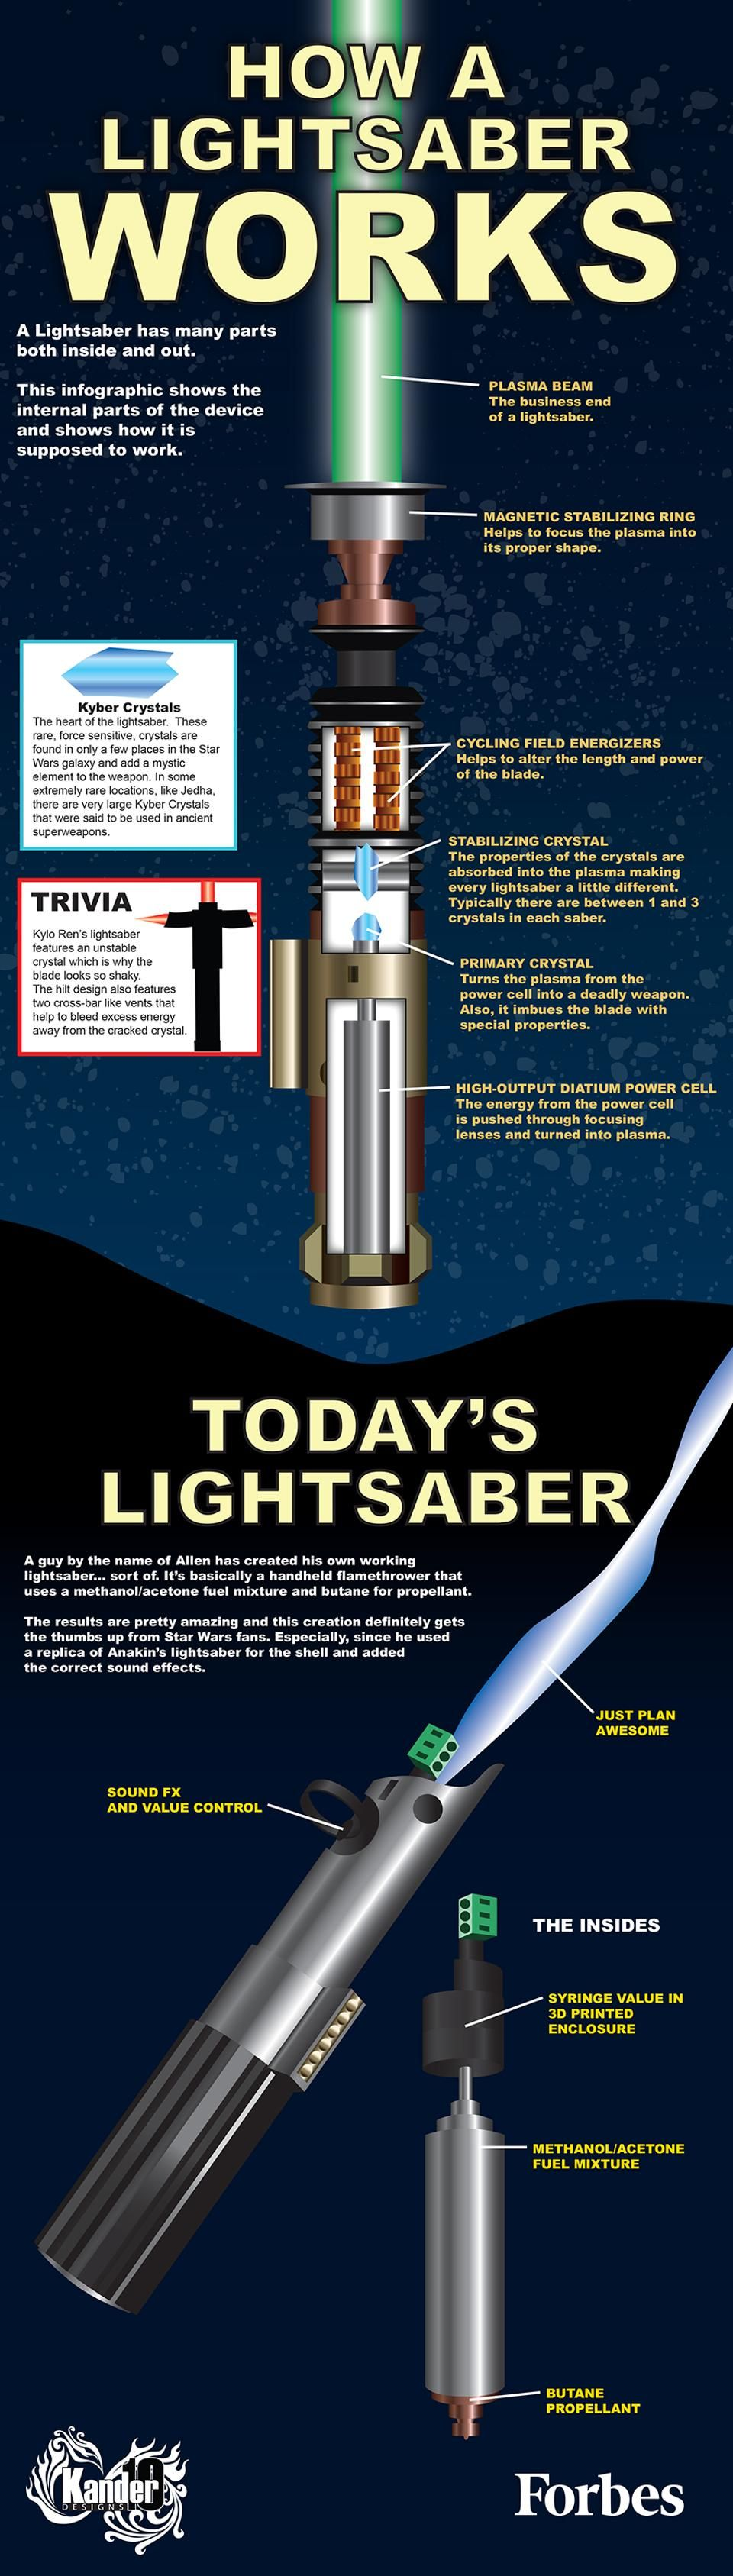 How a Lightsaber Works #Infographic